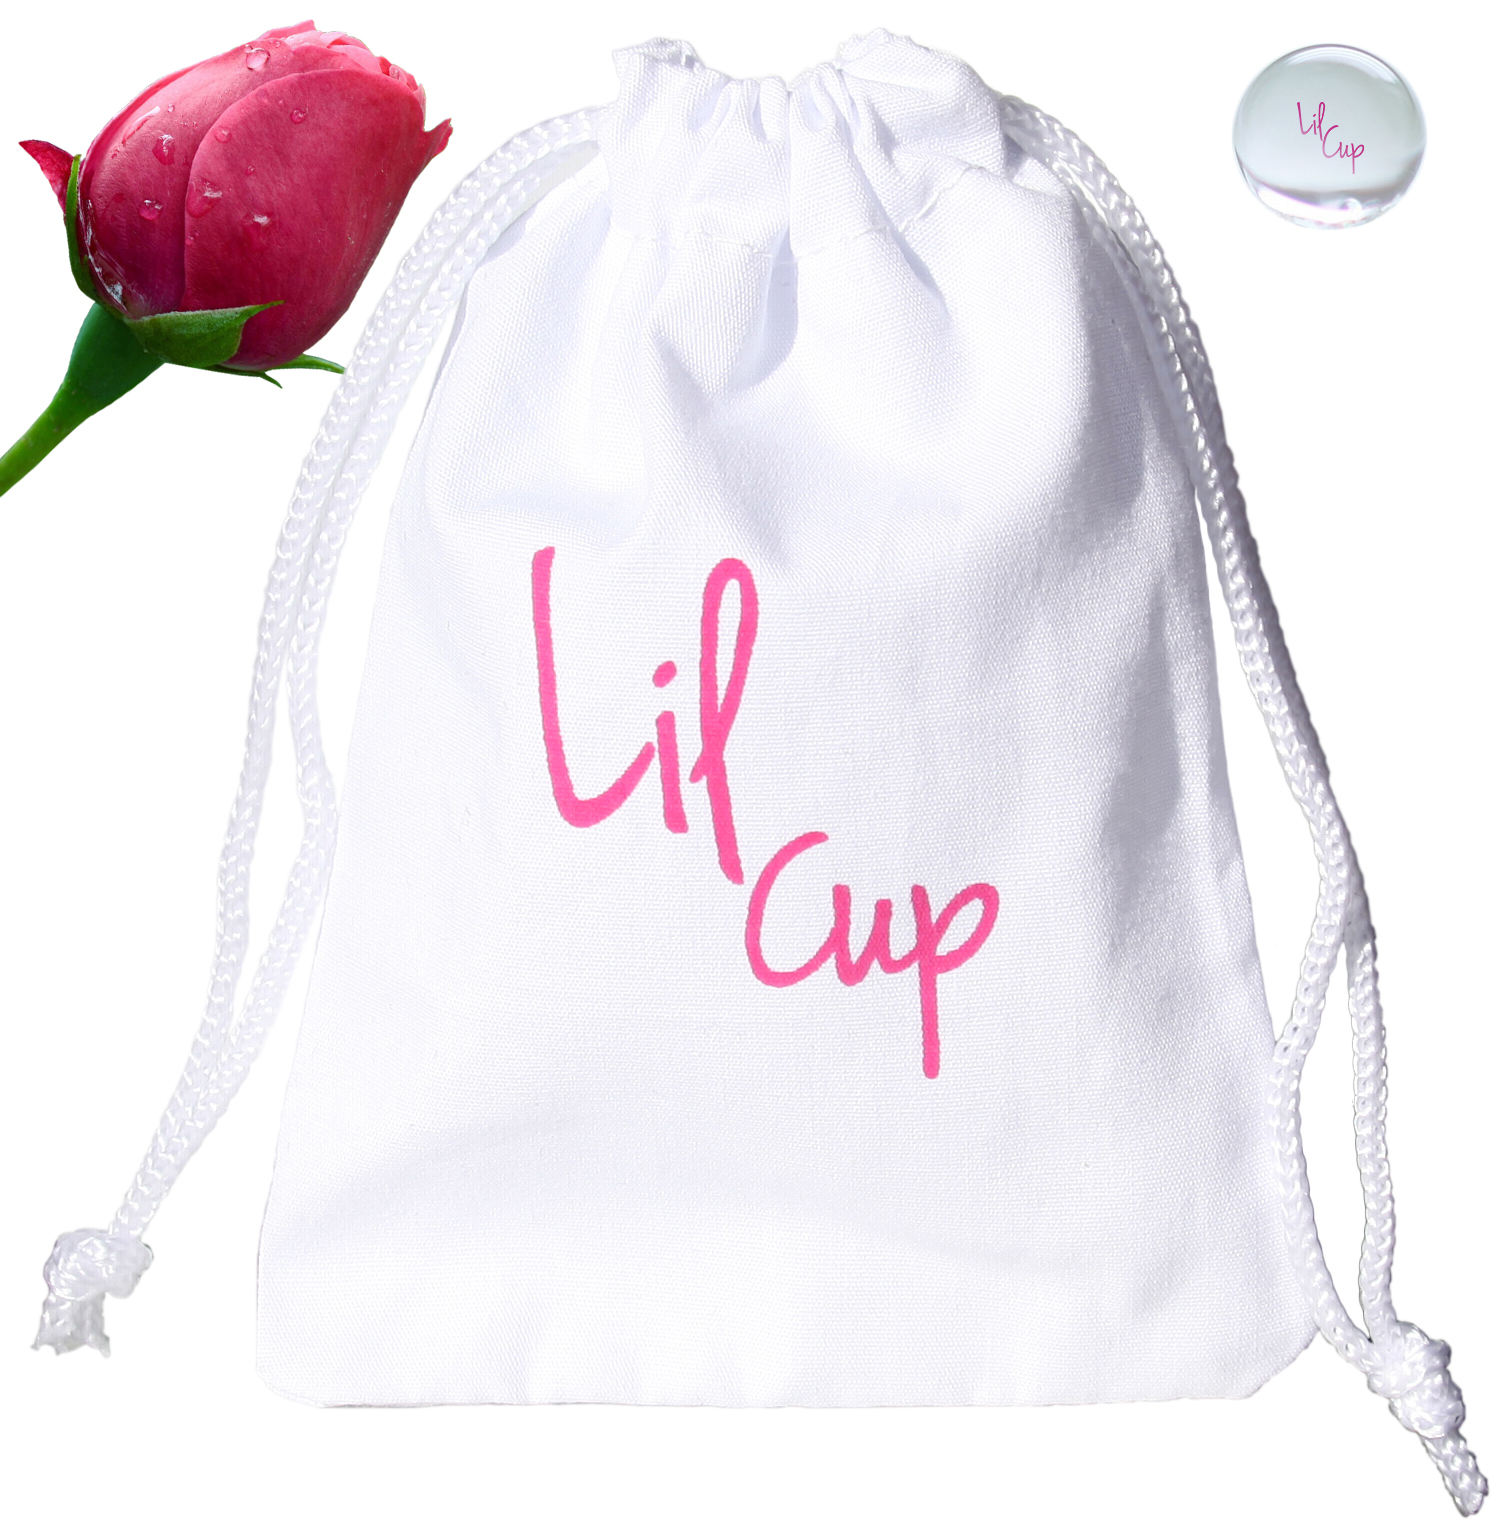 lilcup